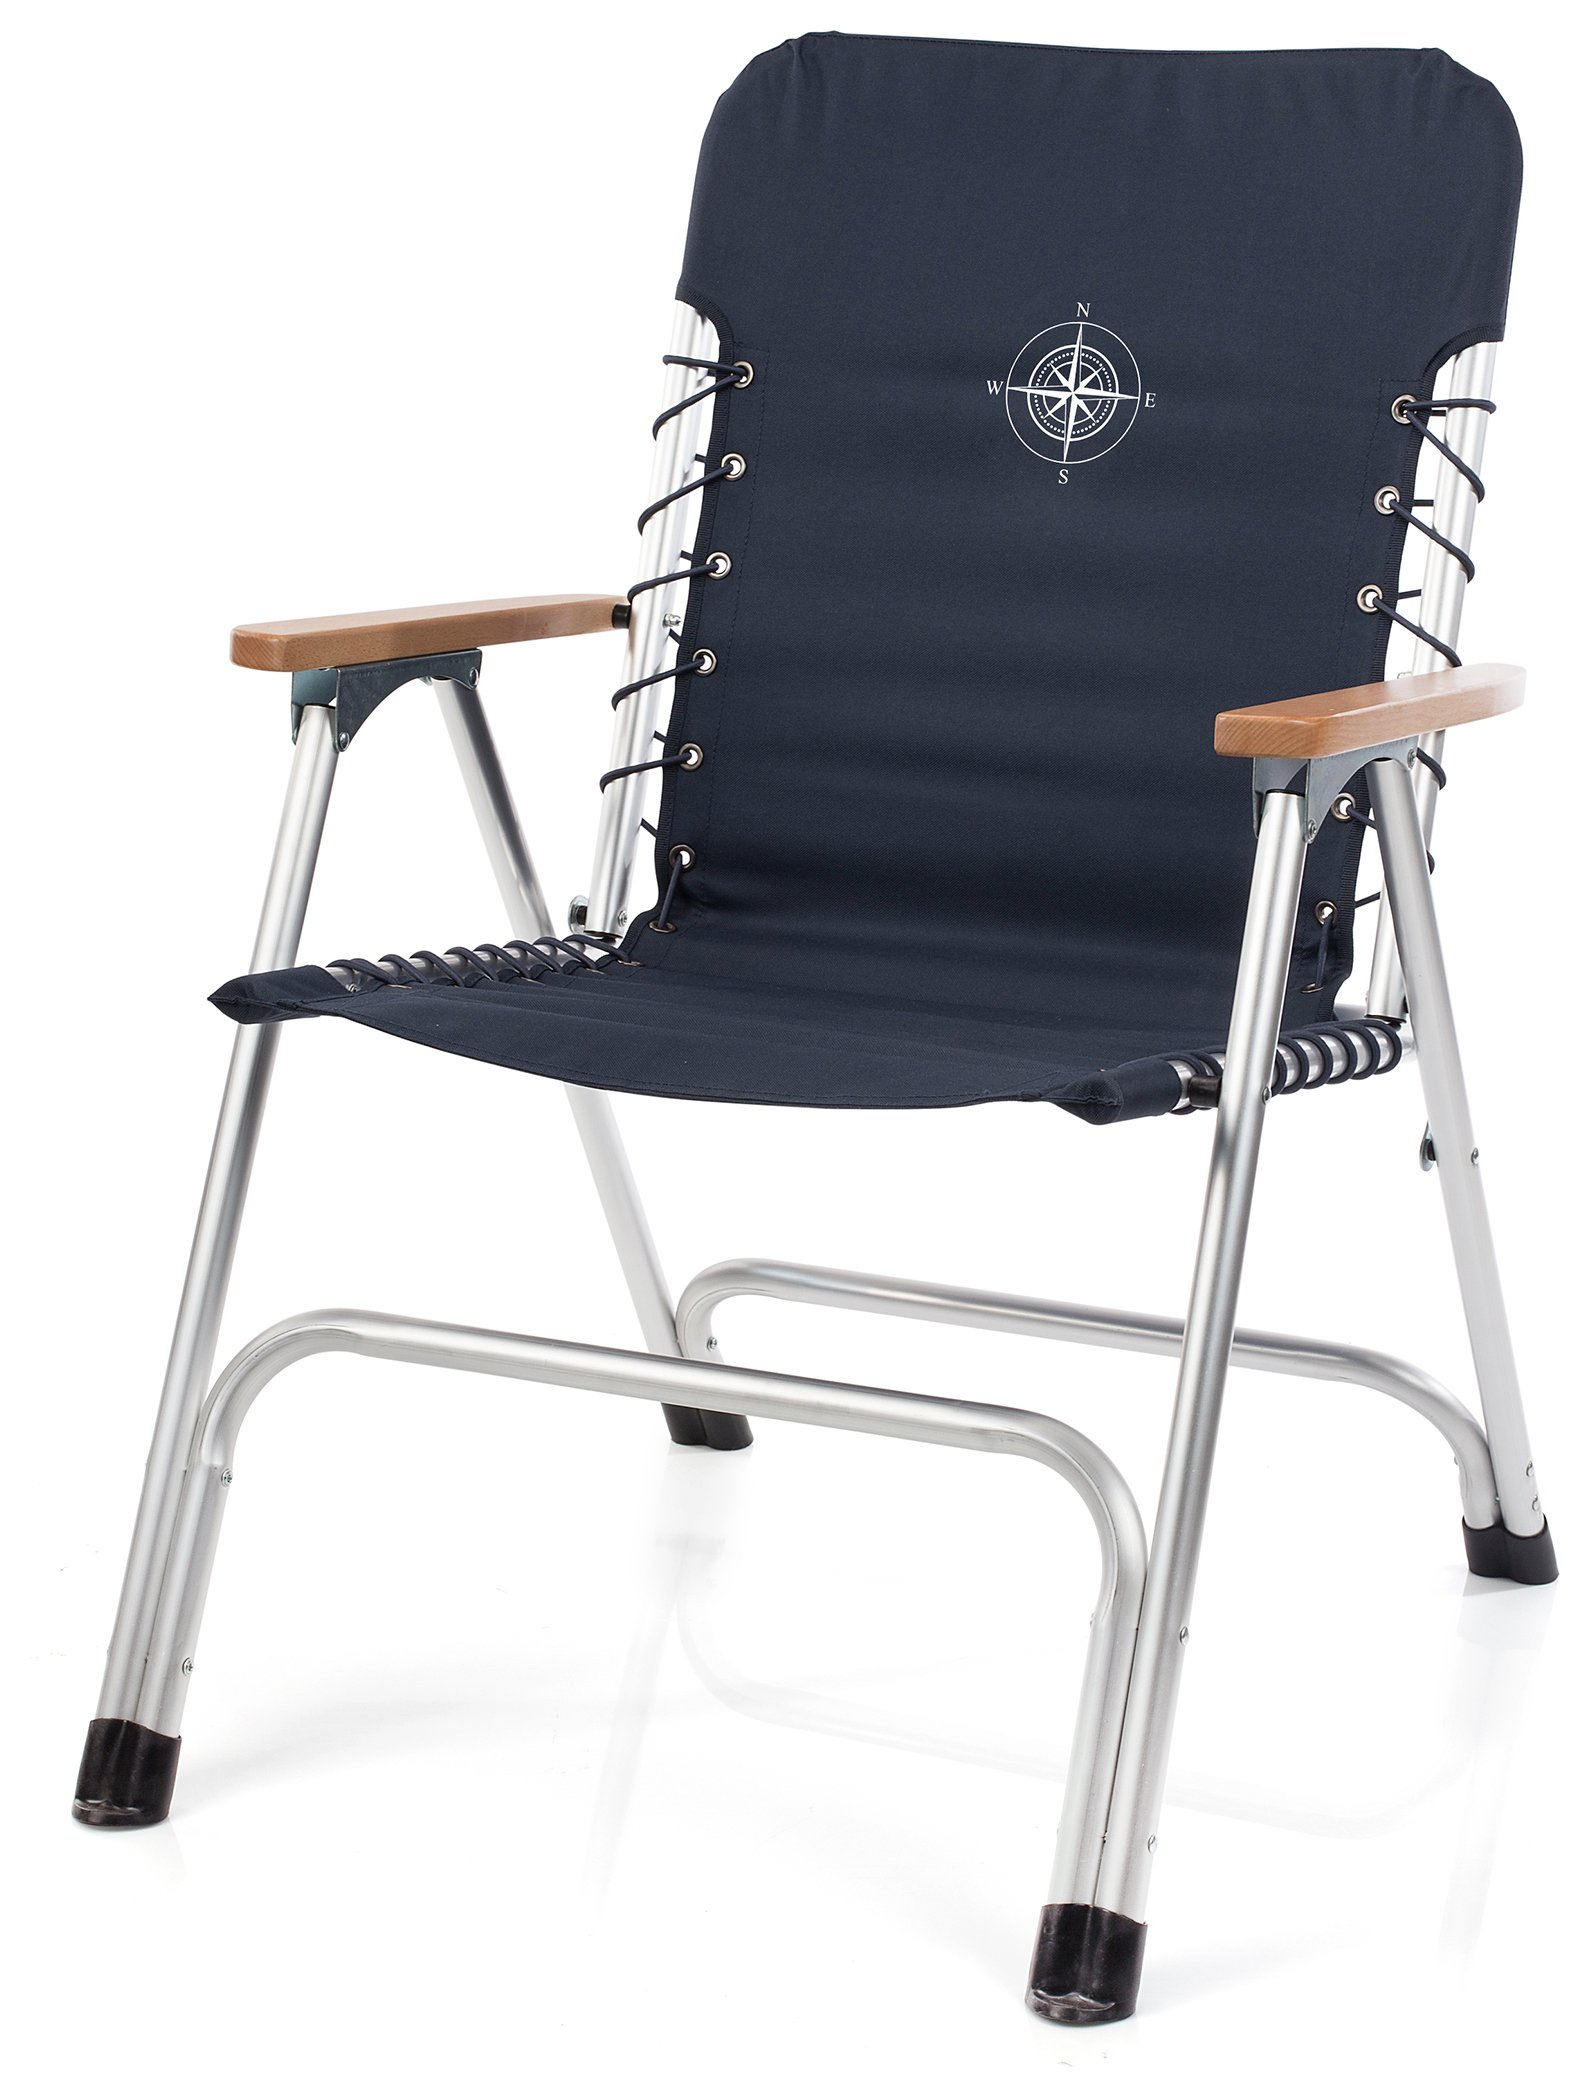 Image of Campart Travel Foldable Pescara Boat Chair